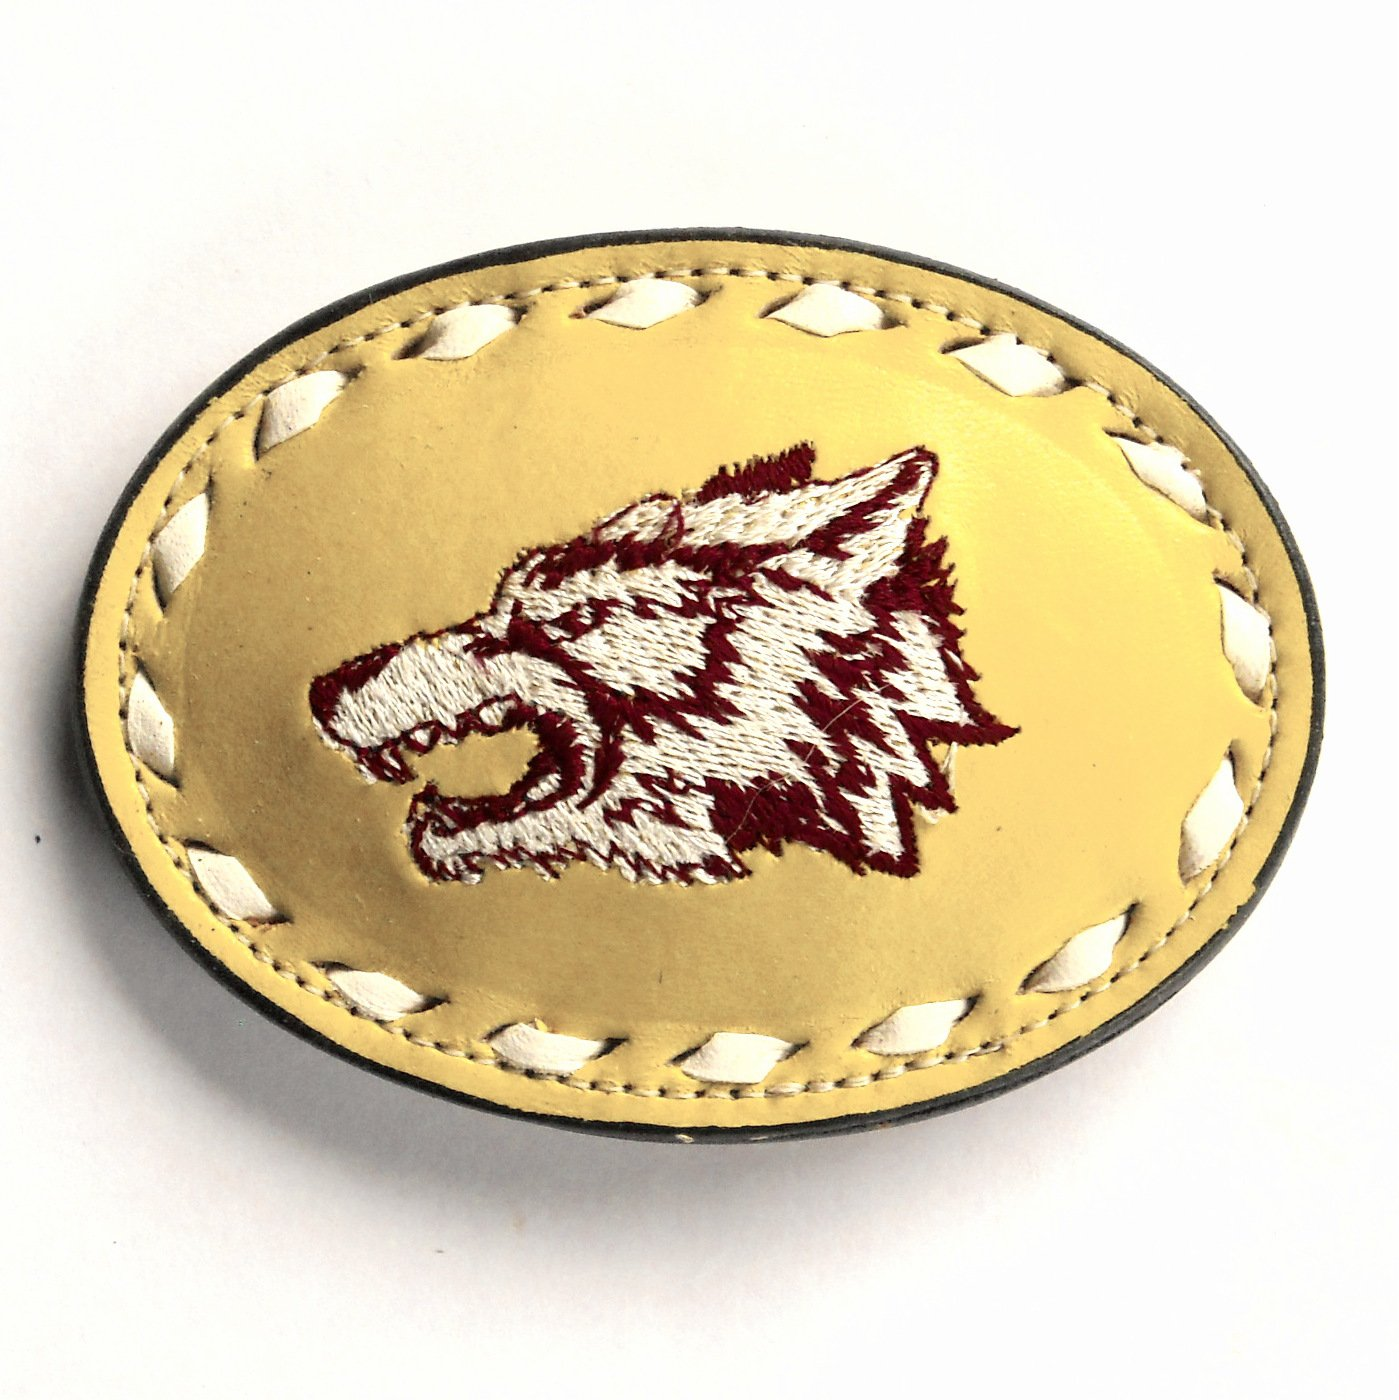 Wolf Embroidered Tony Lama White Lacing Beige Leather Belt Buckle